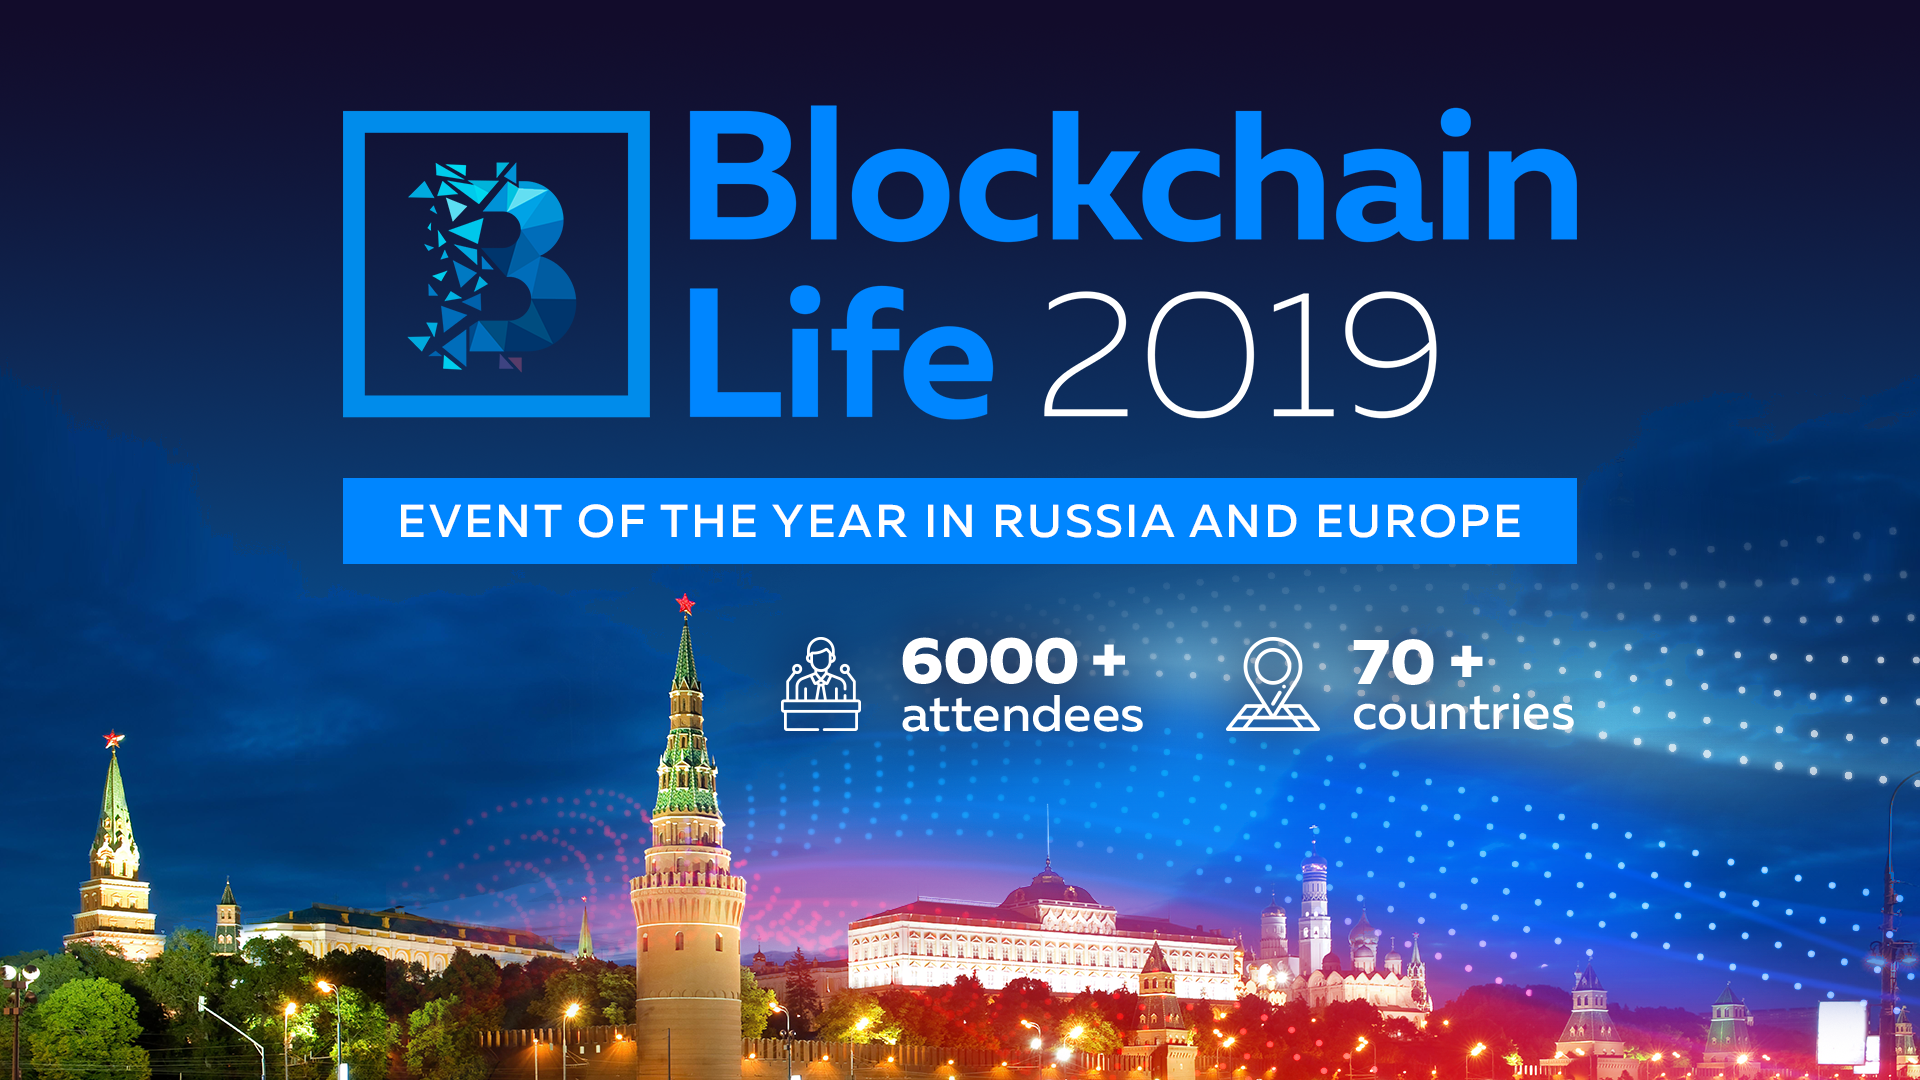 Event of the Year – Blockchain Life 2019